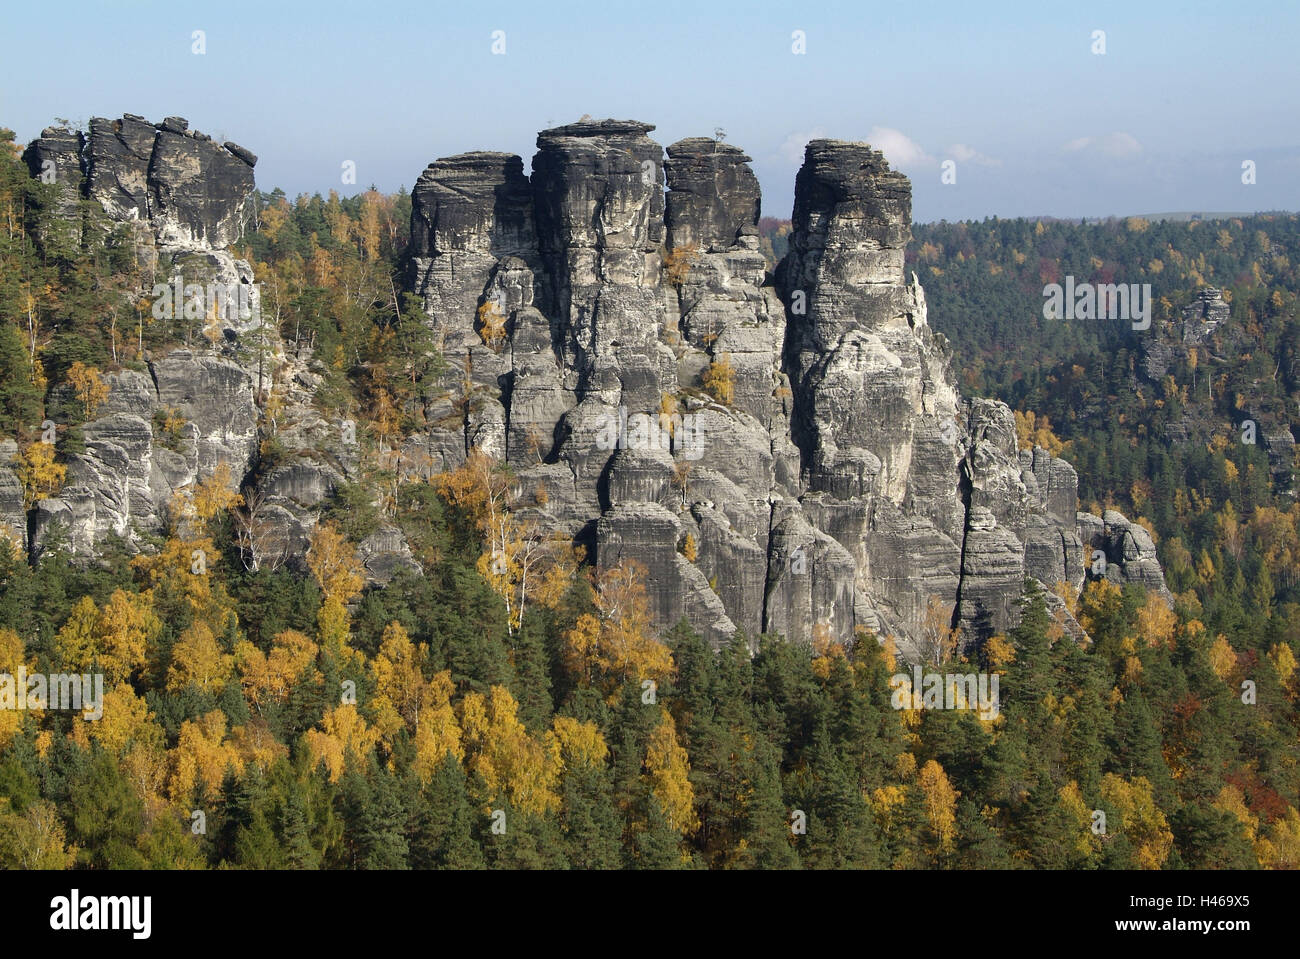 Germany, Saxony, Elbsandsteingebirge, bastion, Saxon Switzerland - Stock Image